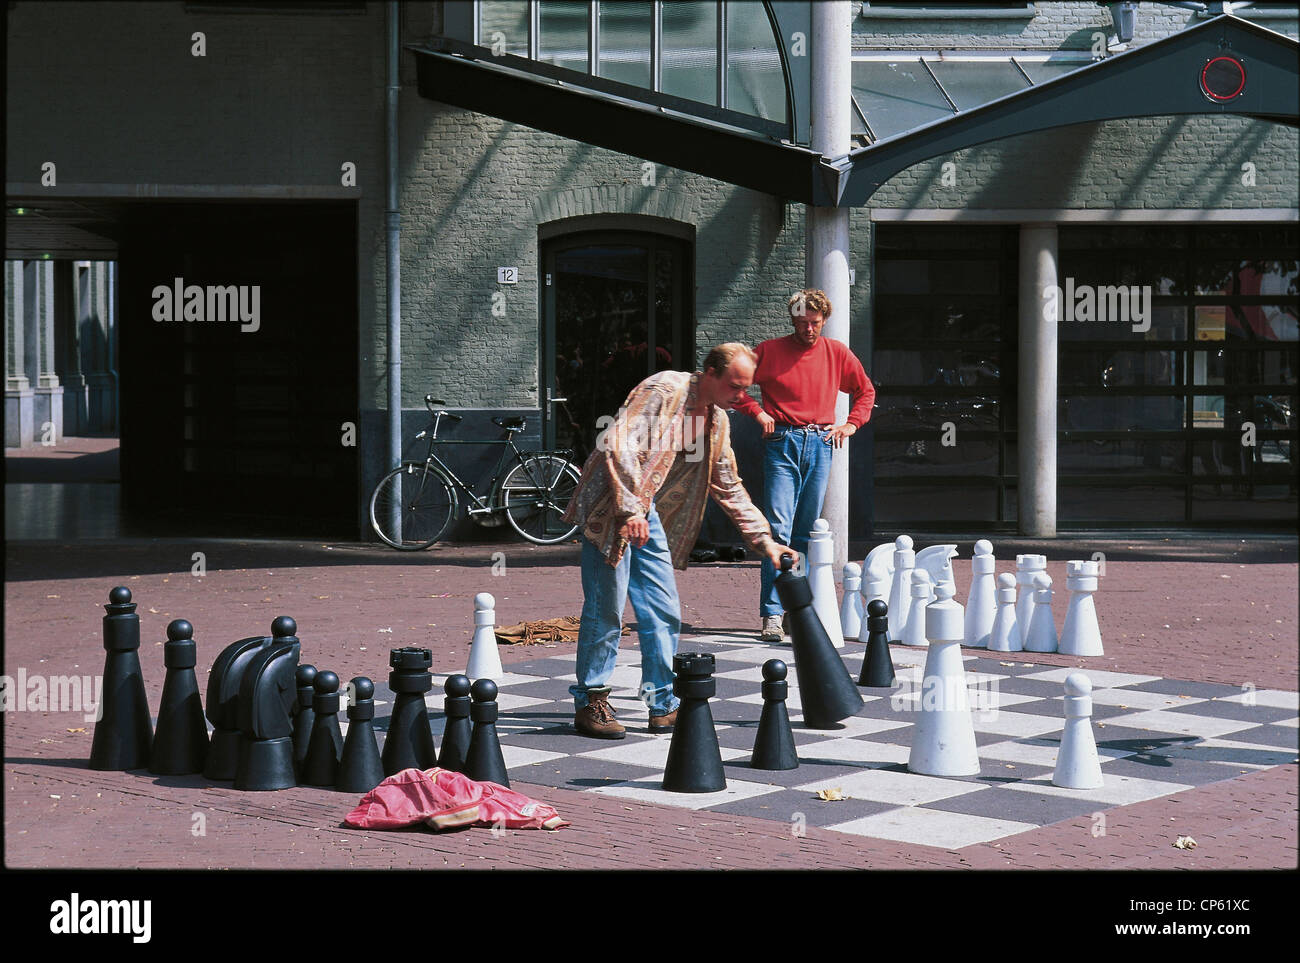 AMSTERDAM, Netherlands CHESS IN A CITY PARK - Stock Image